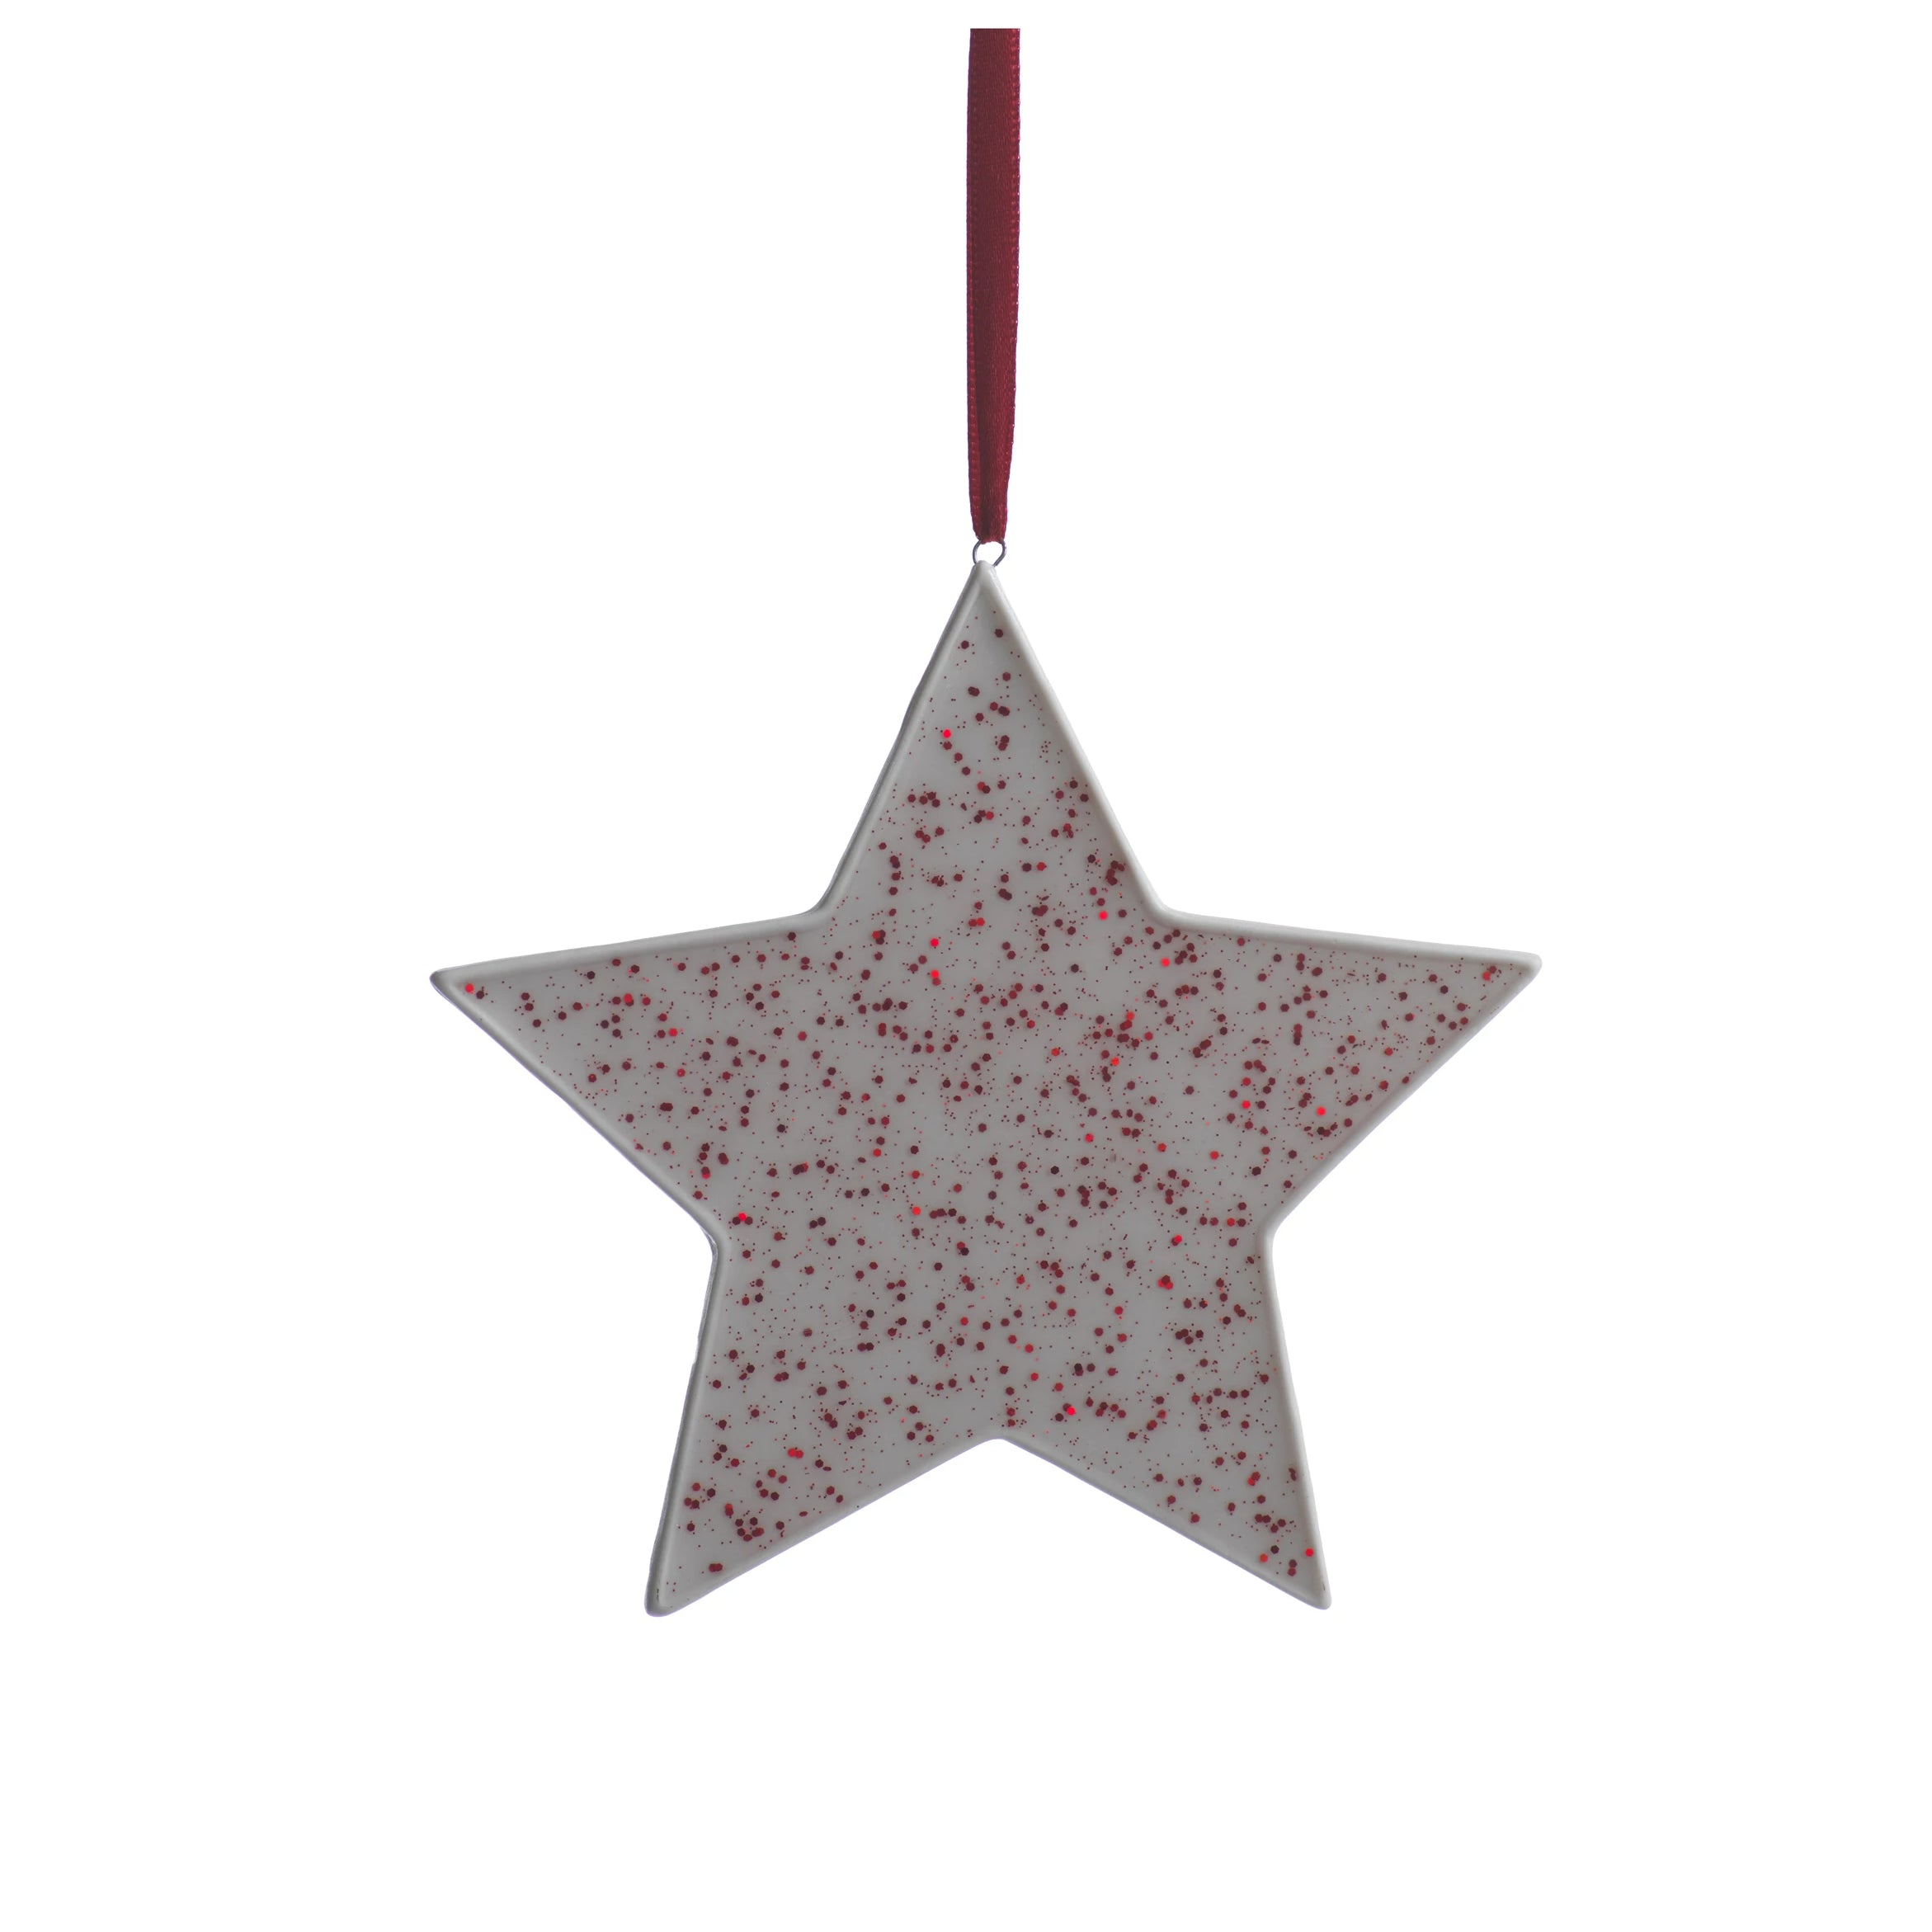 Speckled Star Ornament - Red